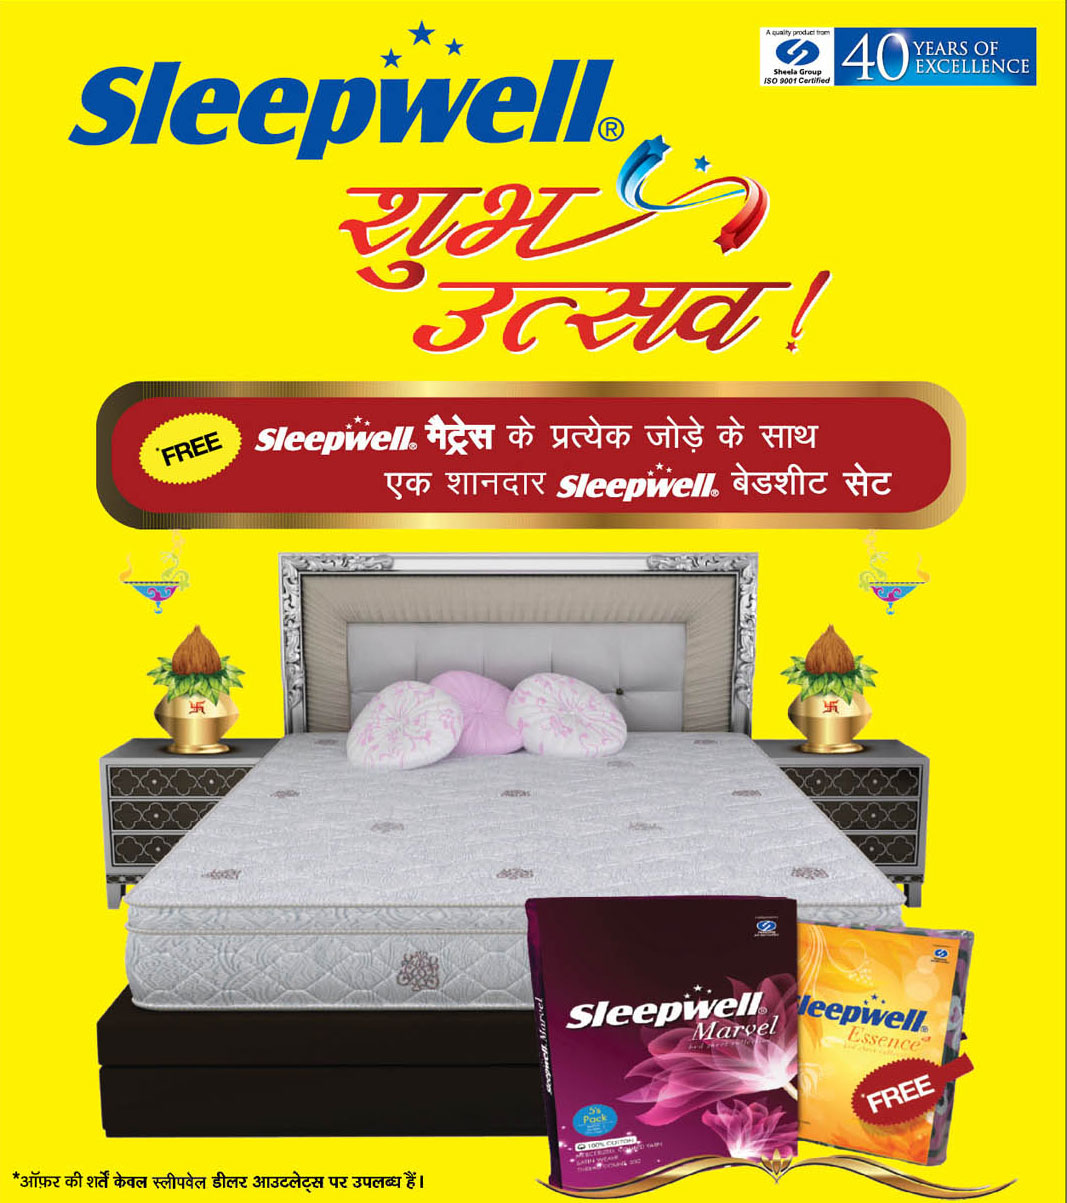 sleepwell offers